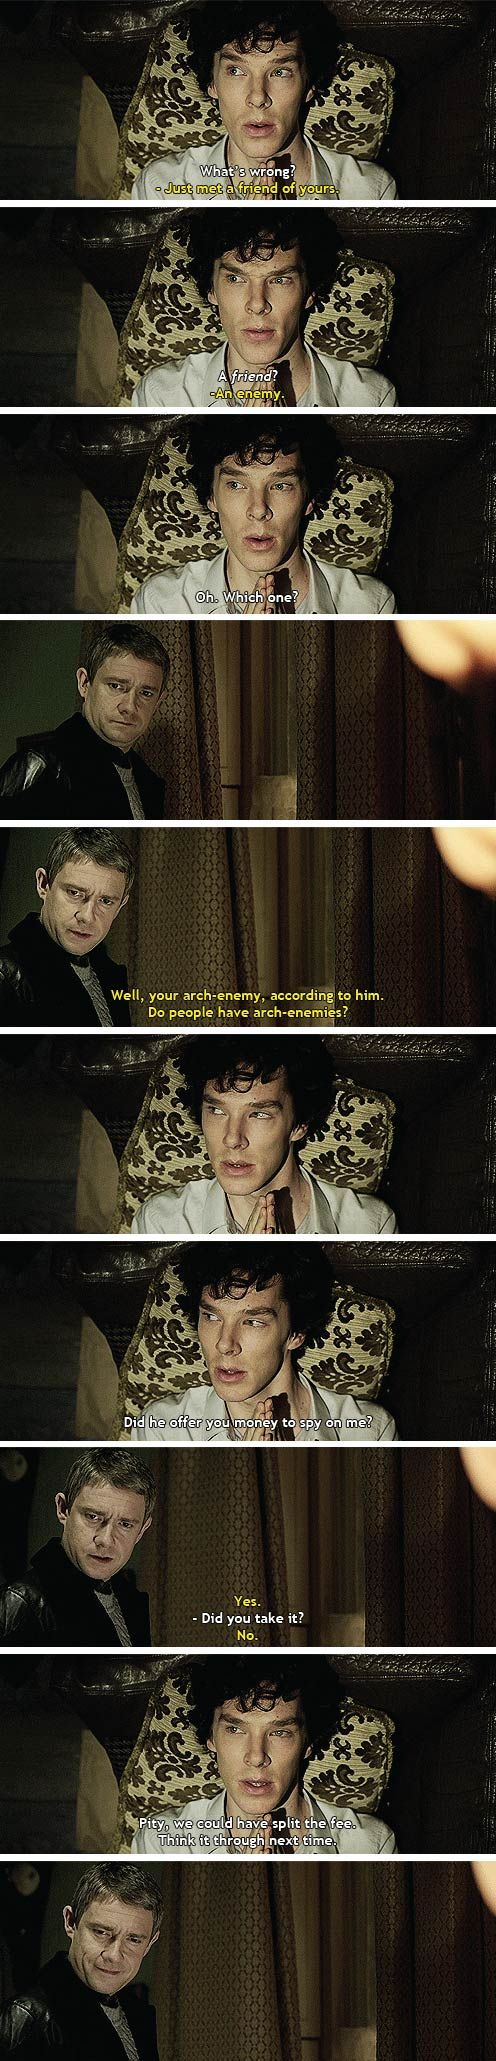 """""""Pity, we could have split the fee. Think it through next time.""""  I forget how amazing this scene is sometimes."""